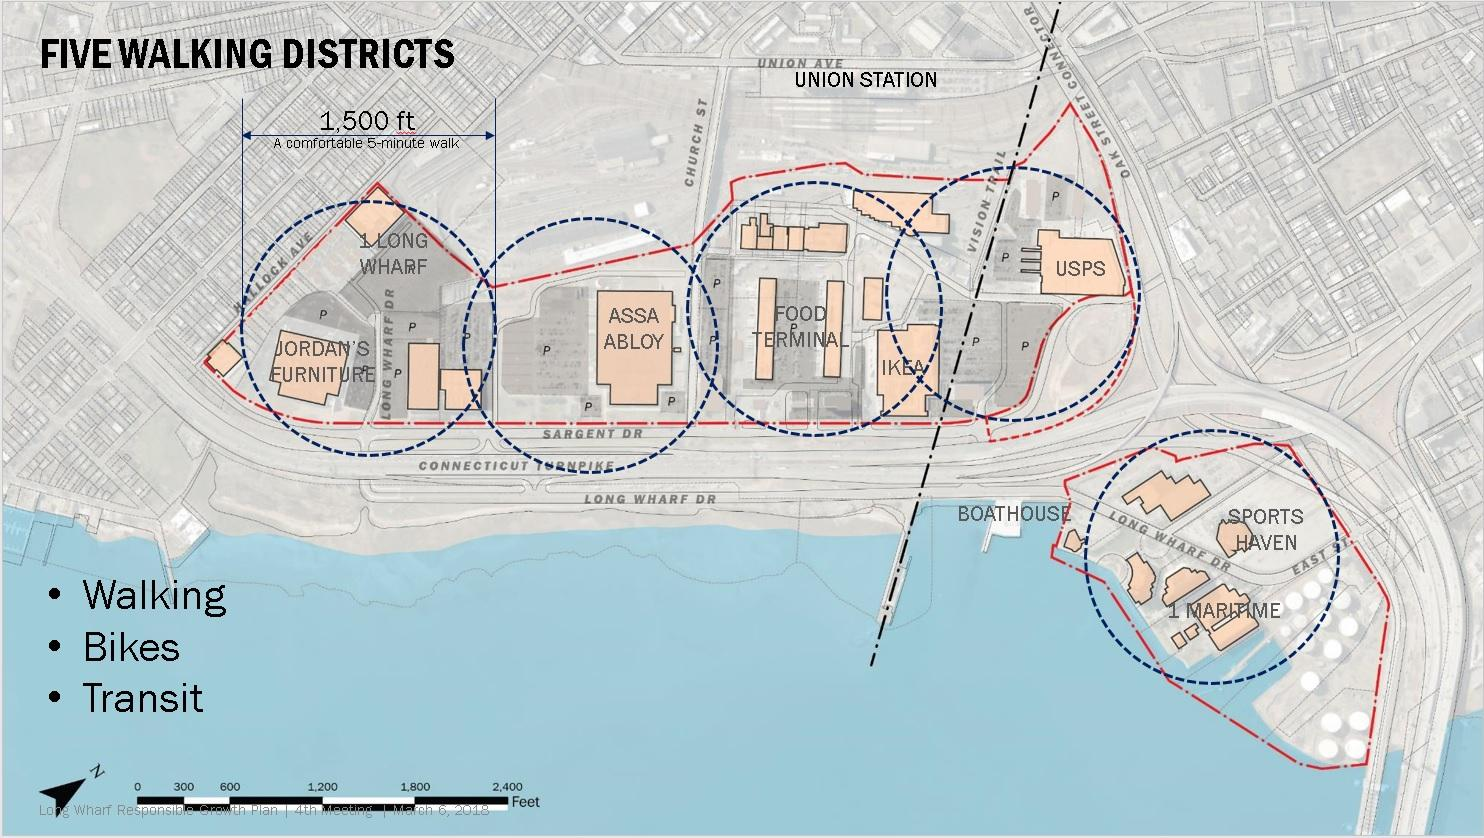 New Haven Long Wharf plan shows vision for area - New Haven Register